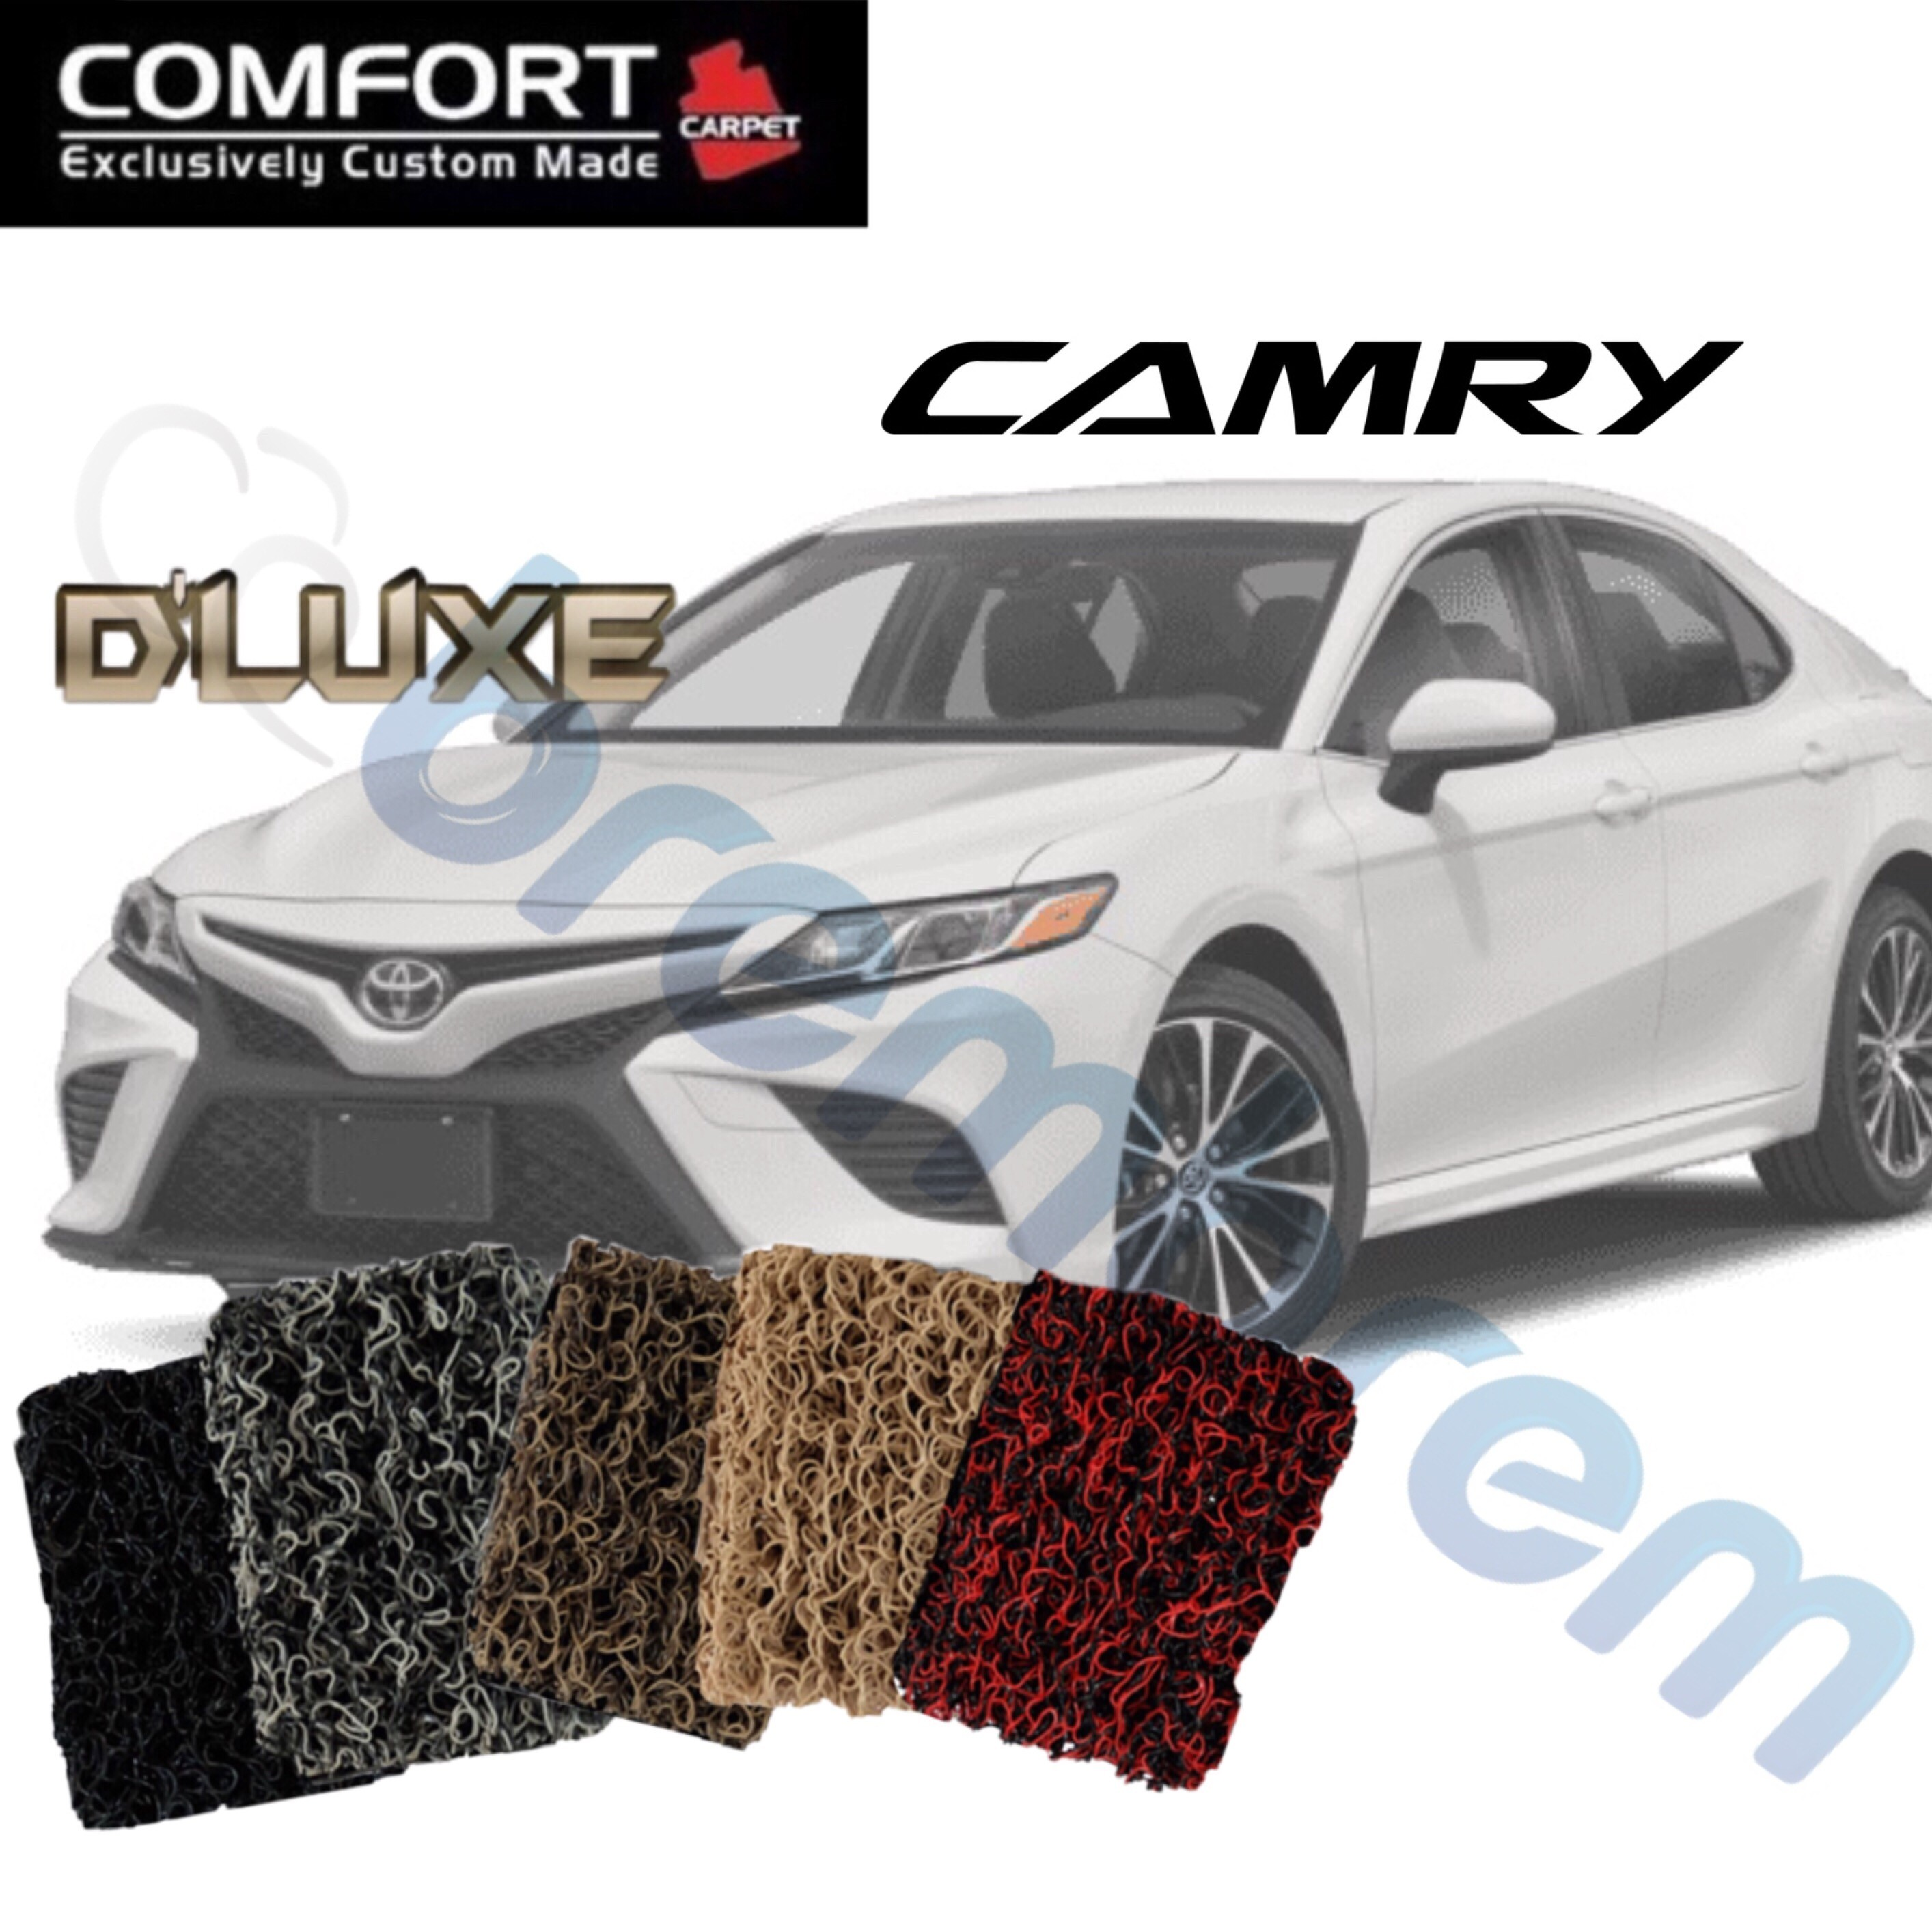 KARPET COMFORT DELUXE NON BAGASI - TOYOTA CAMRY 2019